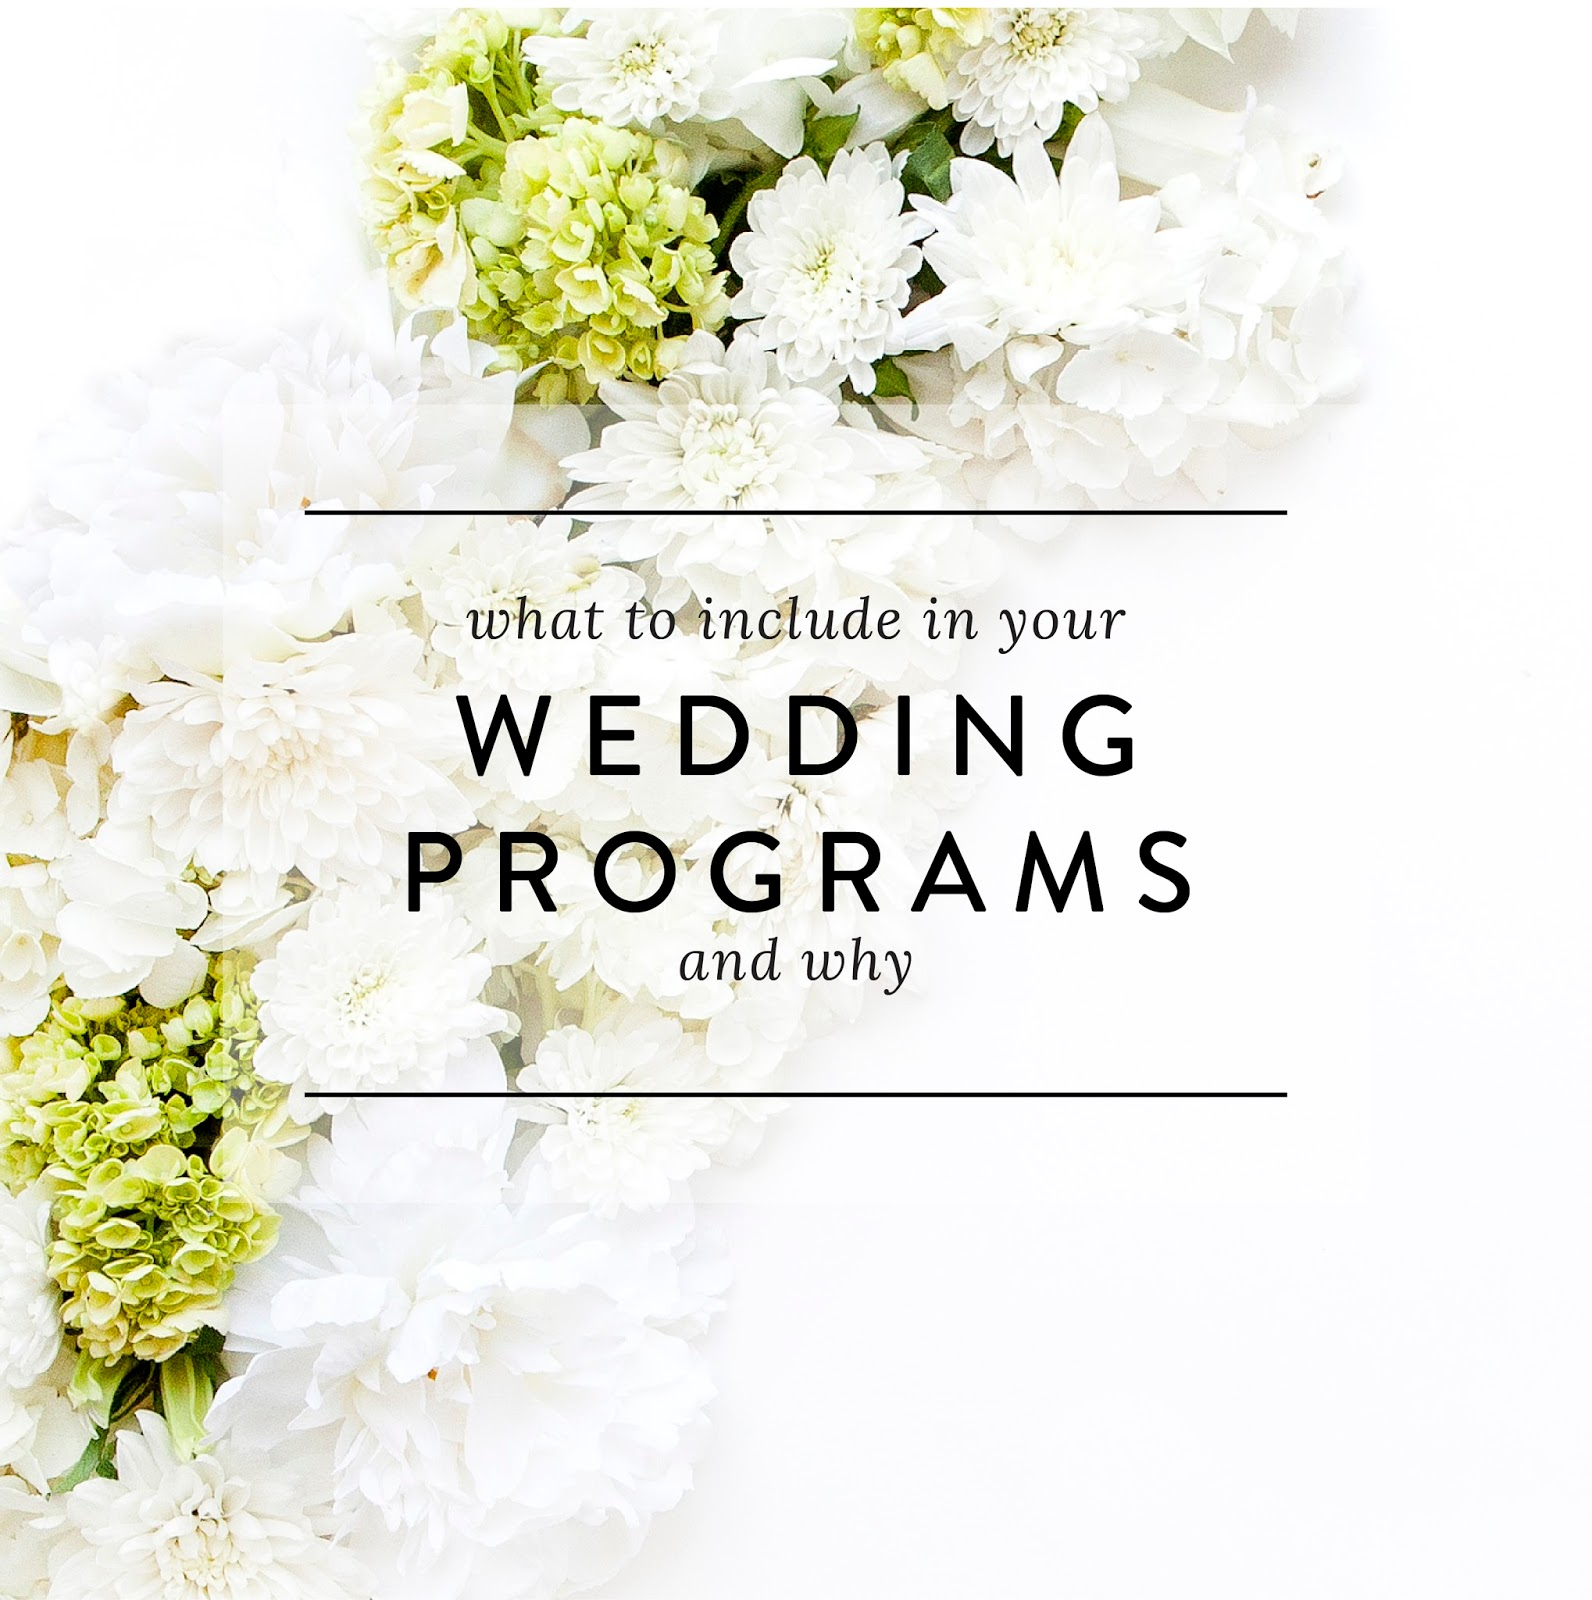 What To Include In Your Wedding Programs By Blush Paper Co